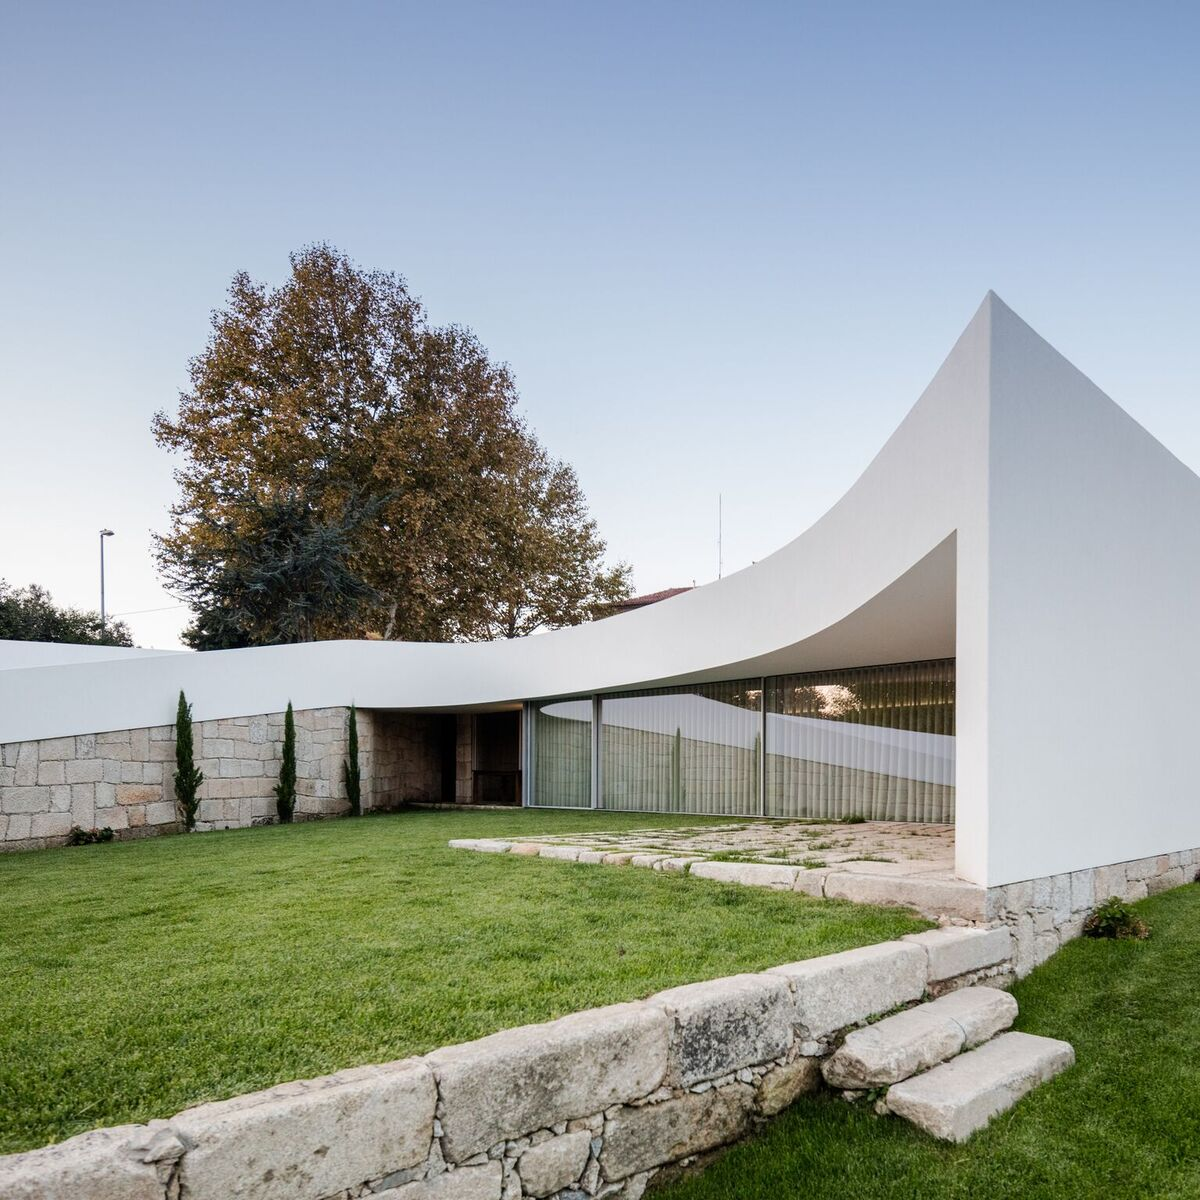 The design and the architecture of the house are influenced by the landscape in a direct and visible way